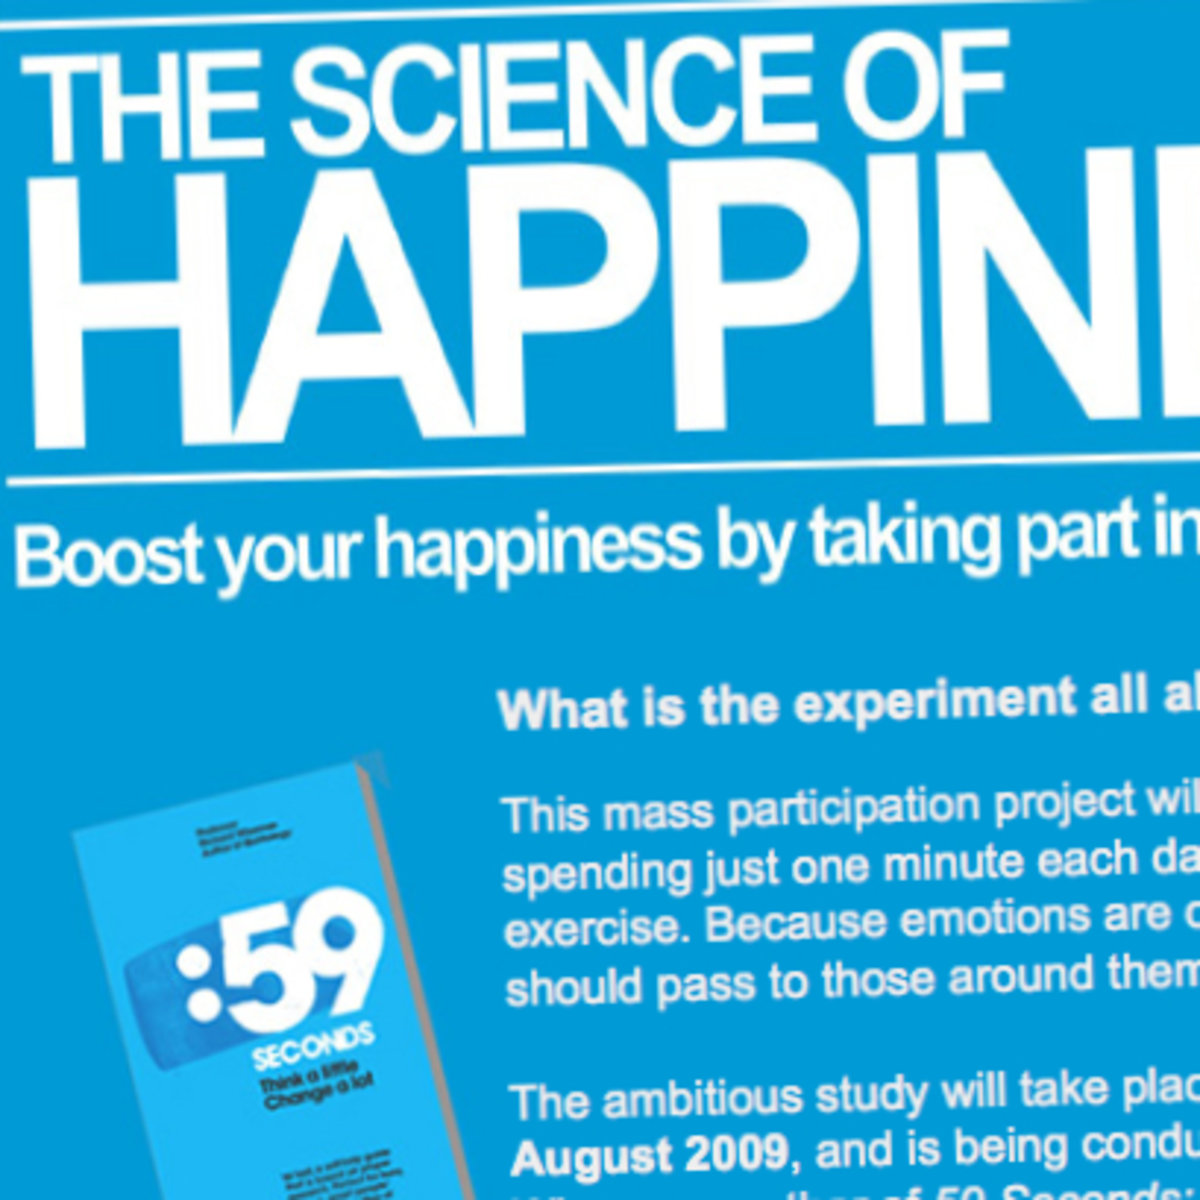 """59 Seconds Richard Wiseman online """"science of happiness"""" study launched - pocket-lint"""